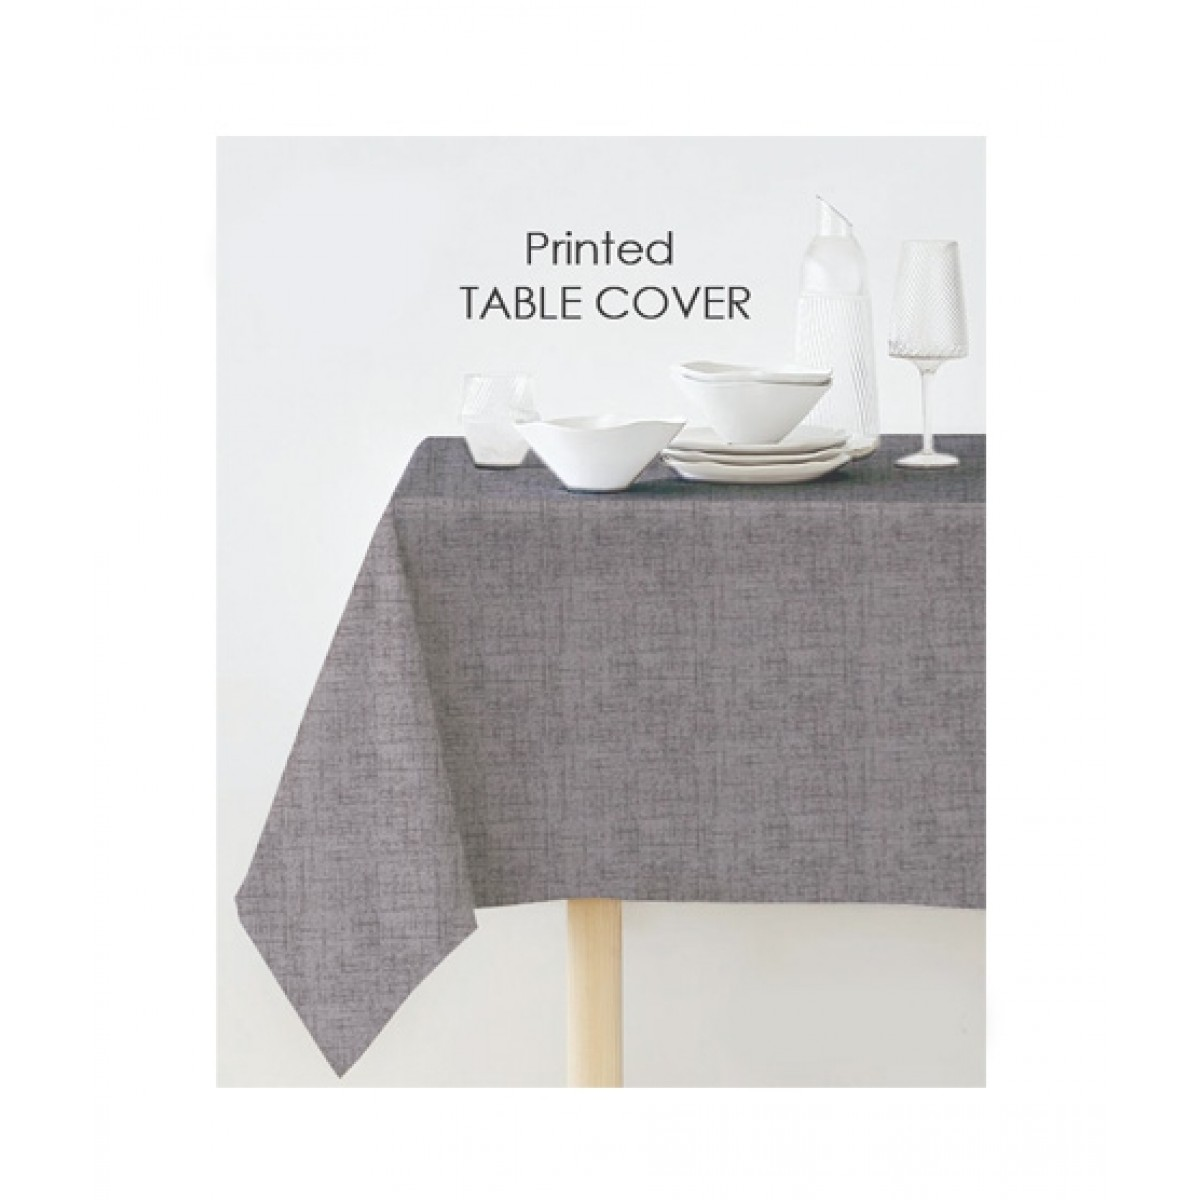 Dream On Printed Table Cover (TC-030-DB)